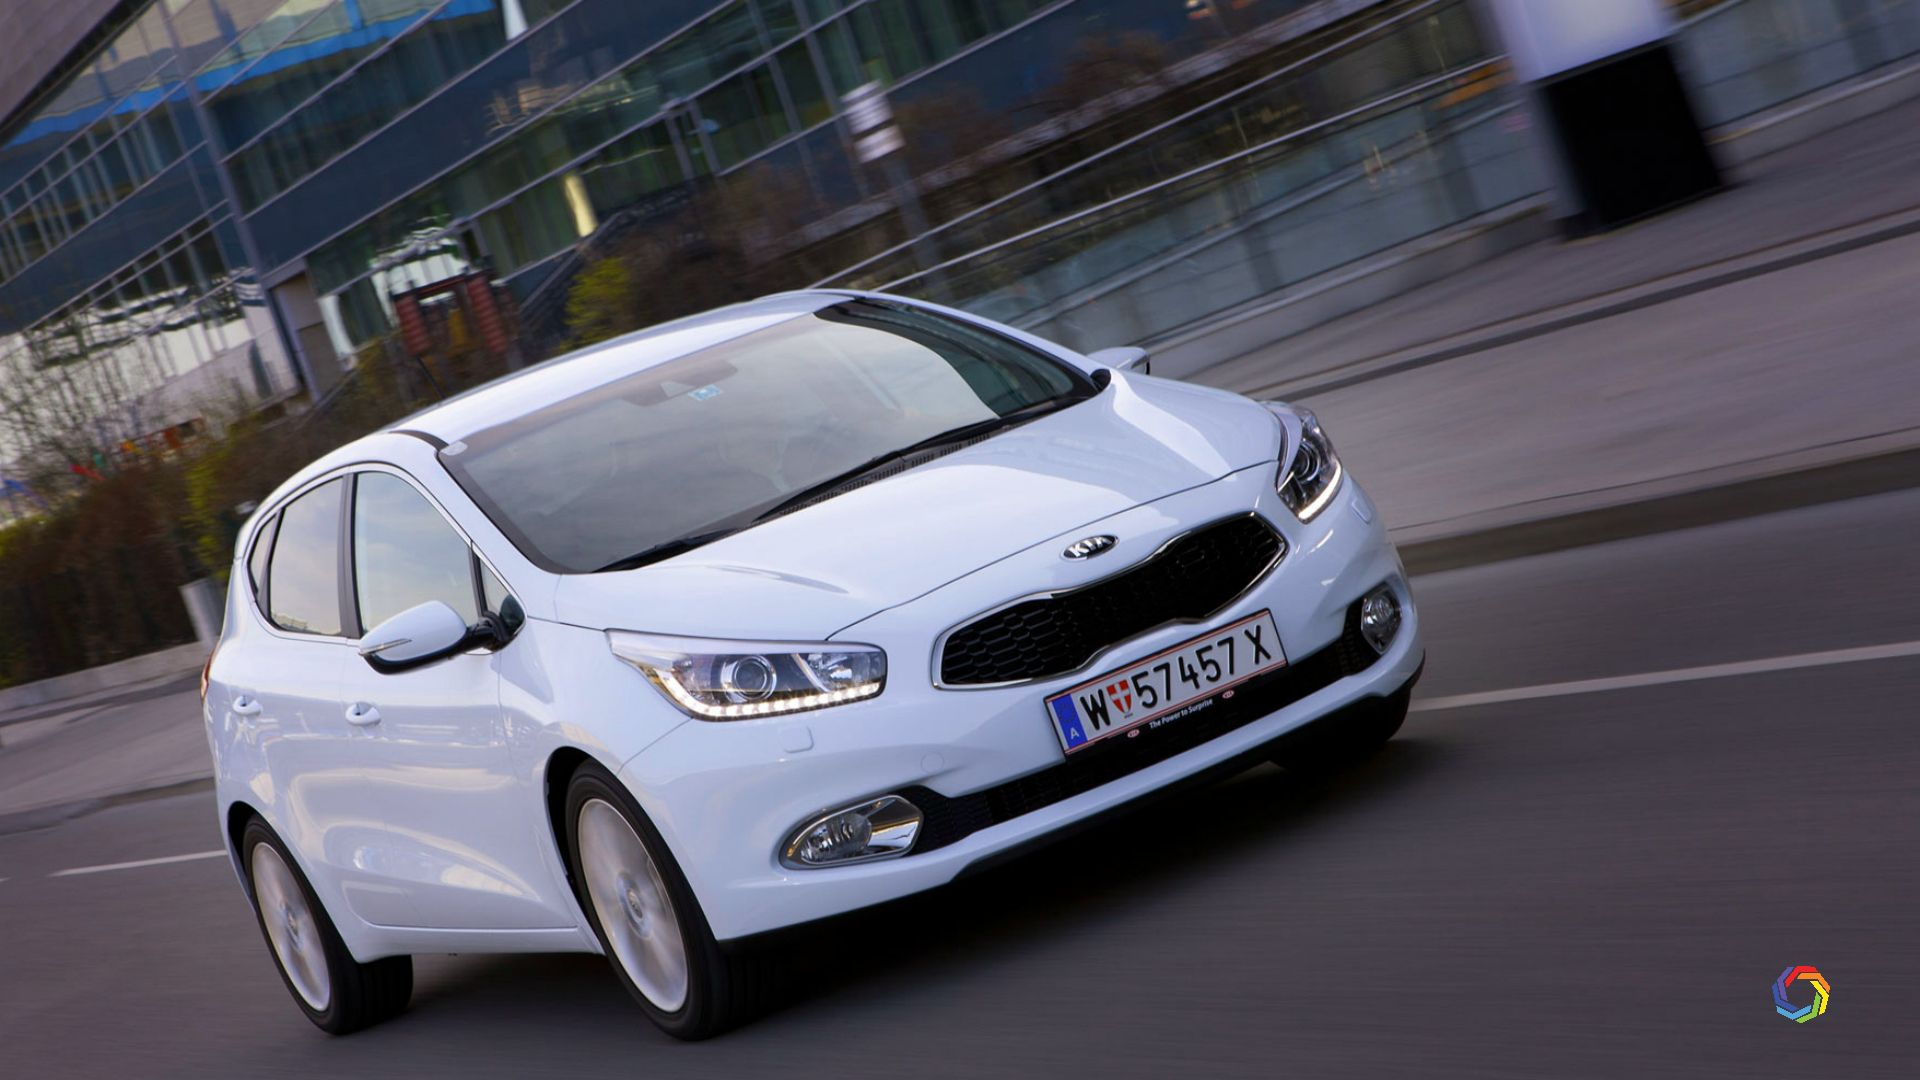 Kia Ceedx Cars Wallpapers Hd Full Kia Ceed Car Wallpapers Kia